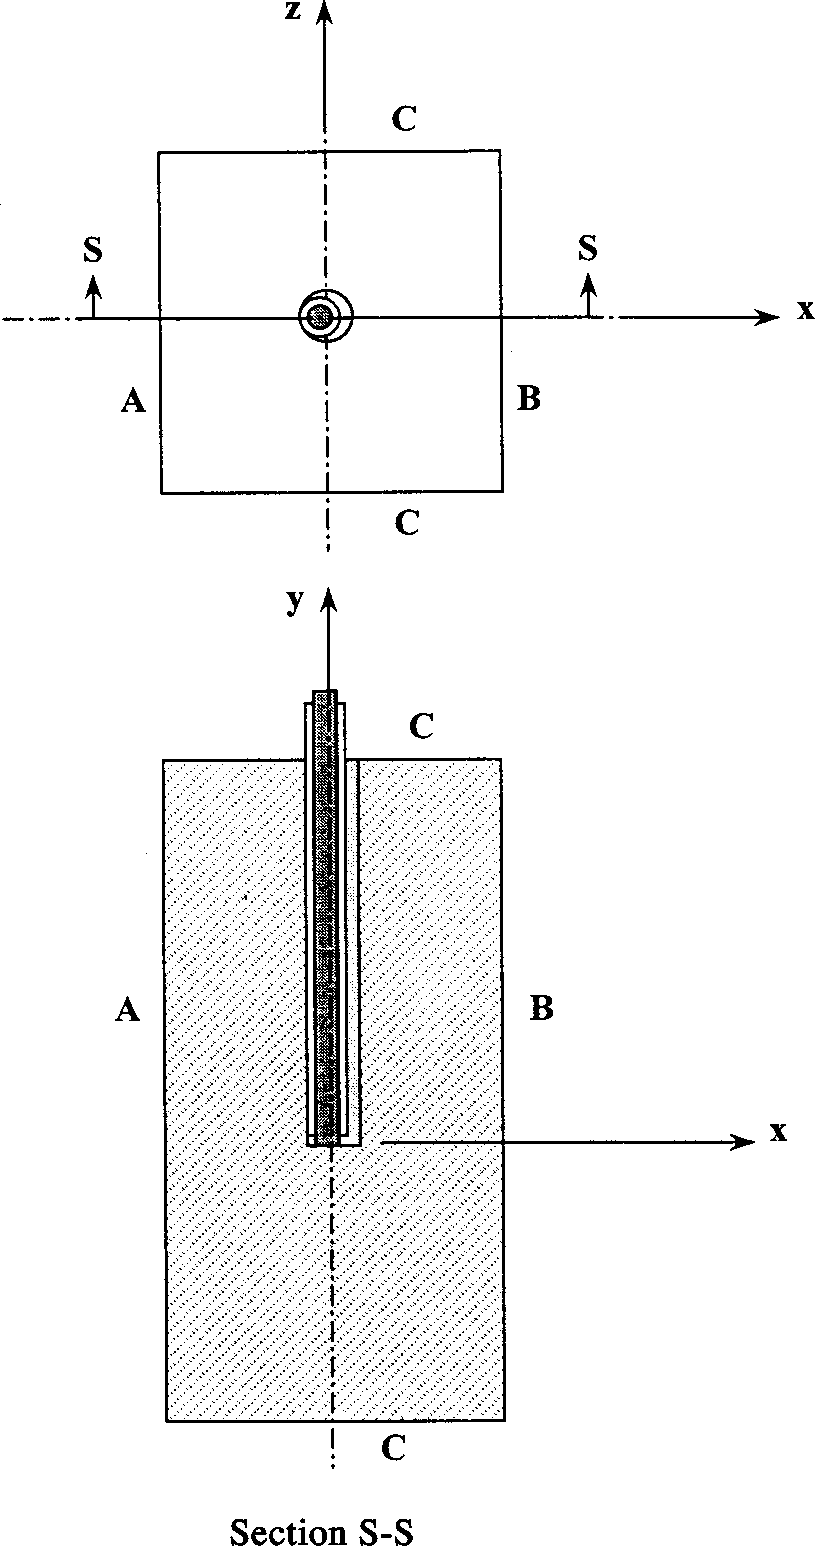 hight resolution of schematic representation of the orientation of the thermocouple installation in relation to the hot and cold